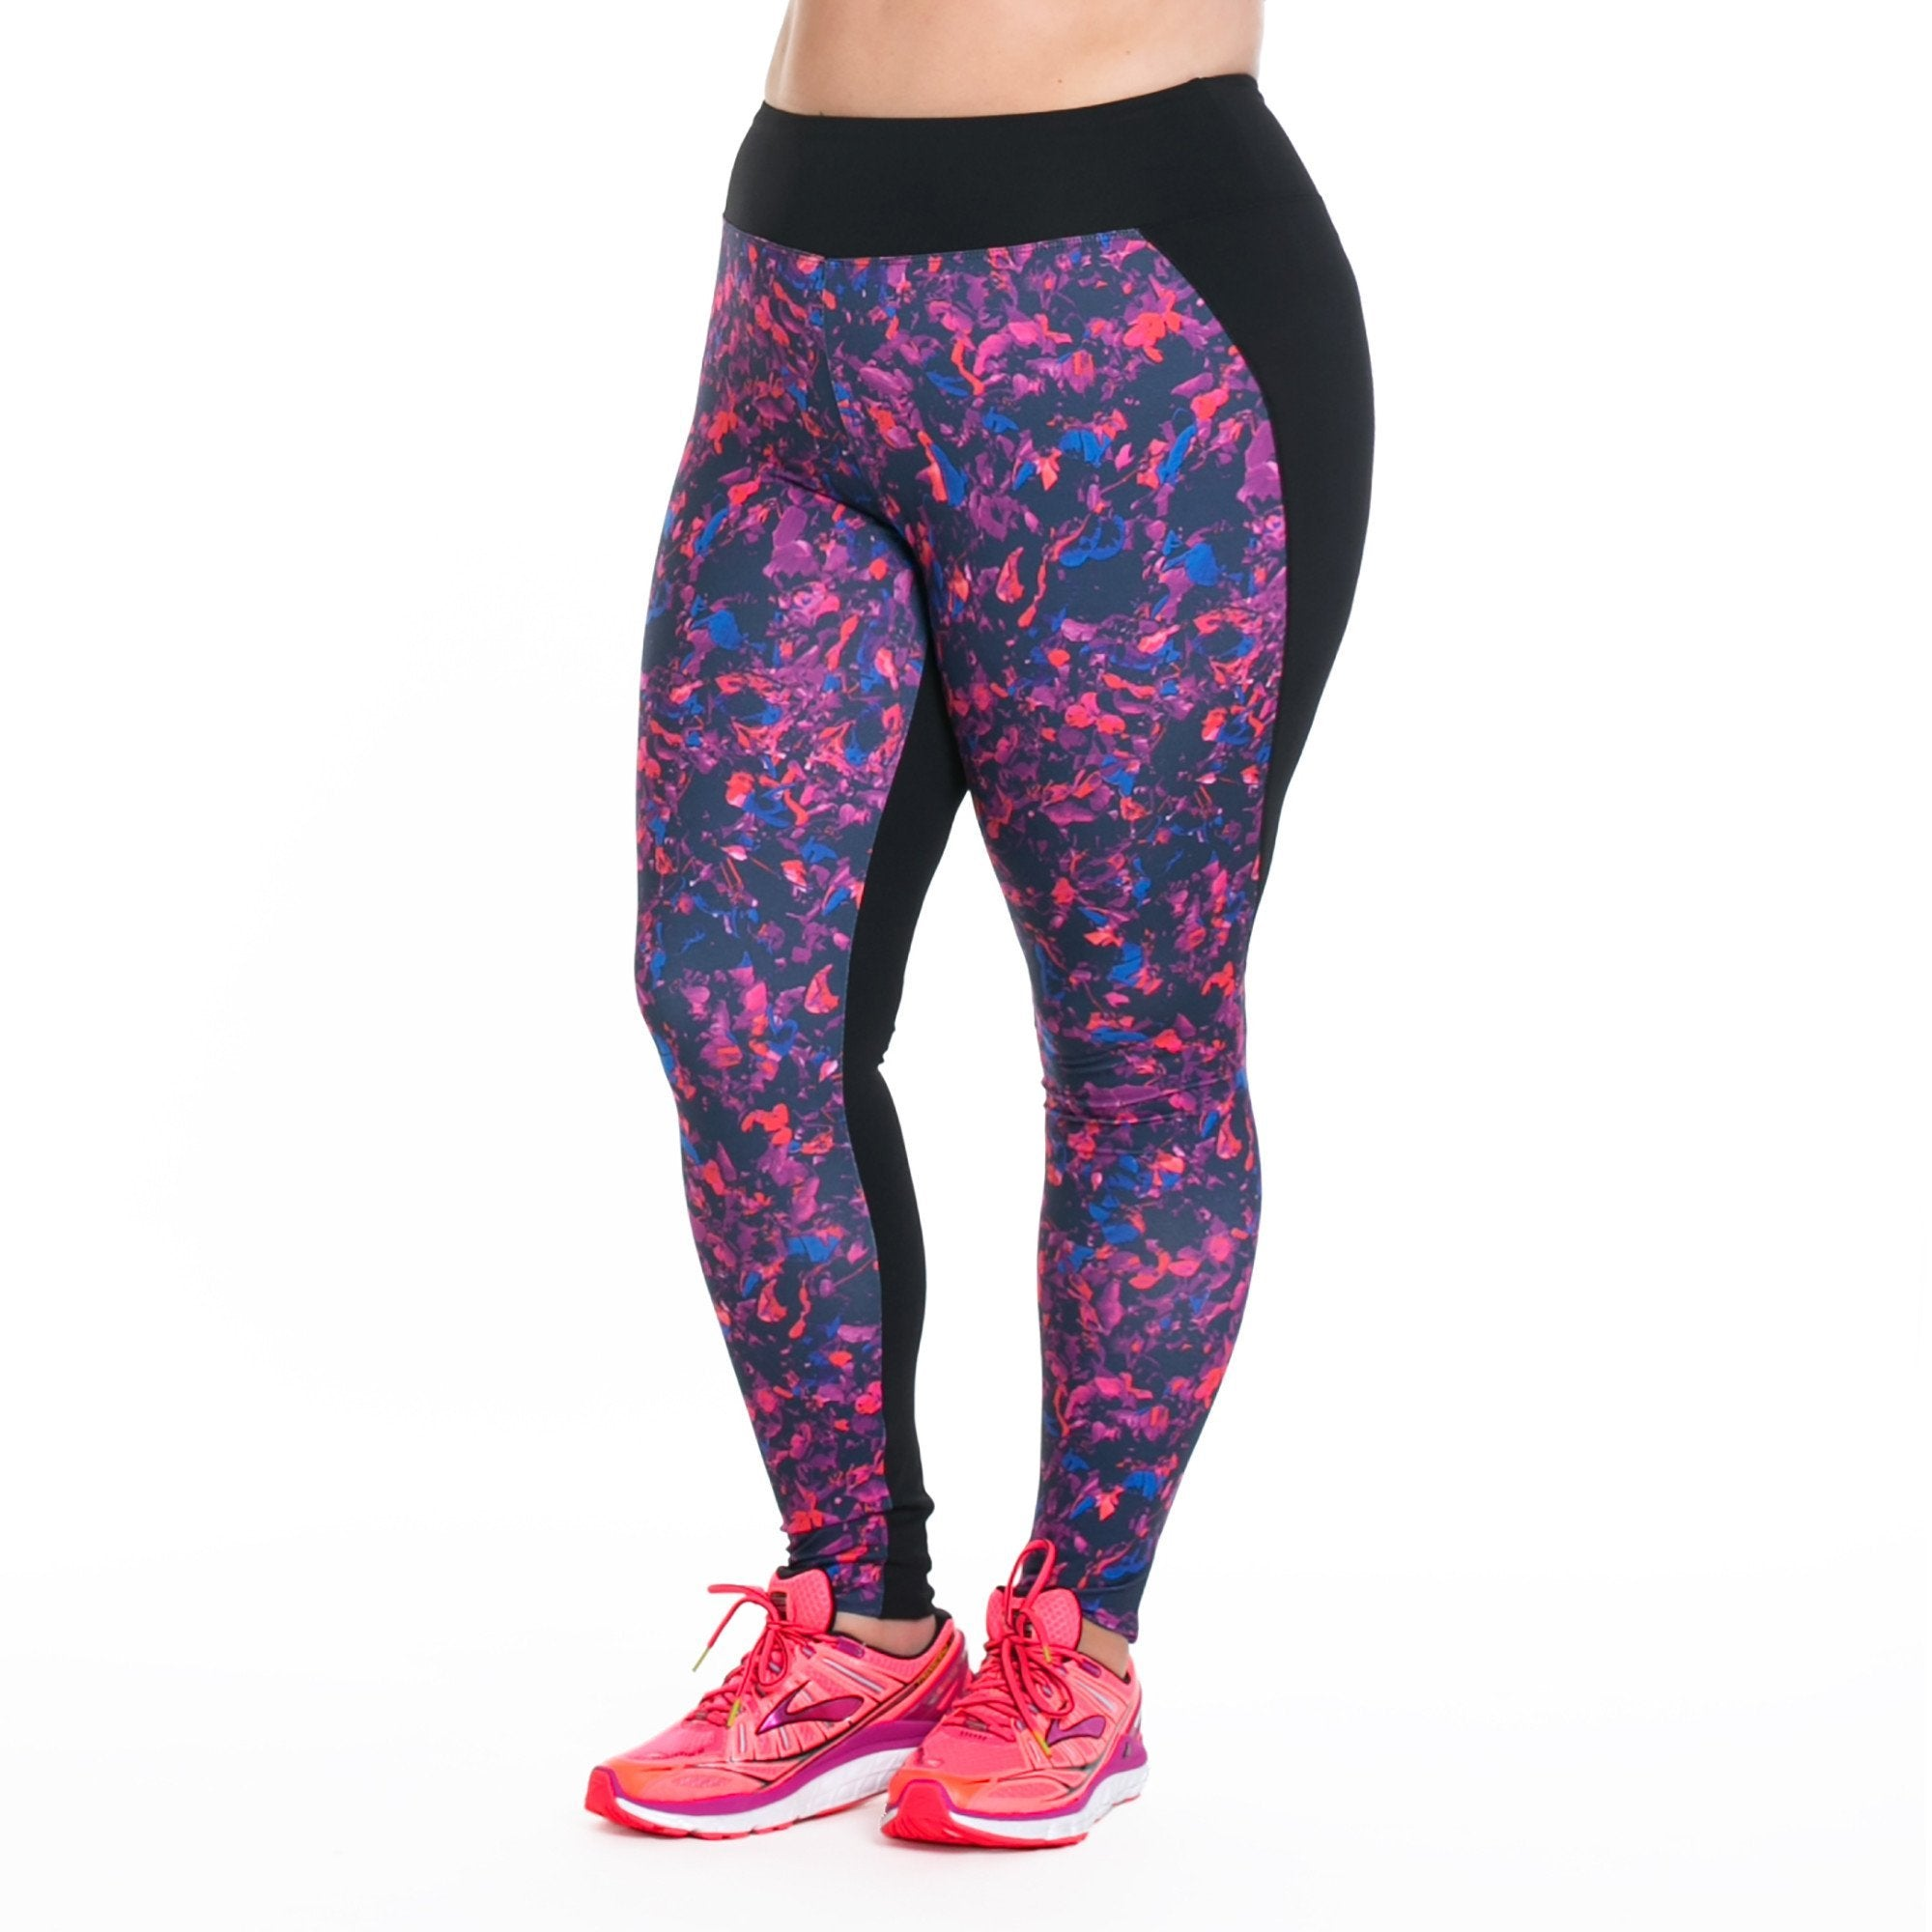 Lauren Print Sport Tight - Rainbeau Curves, , activewear, athleisure, fitness, workout, gym, performance, womens, ladies, plus size, curvy, full figured, spandex, cotton, polyester - 3